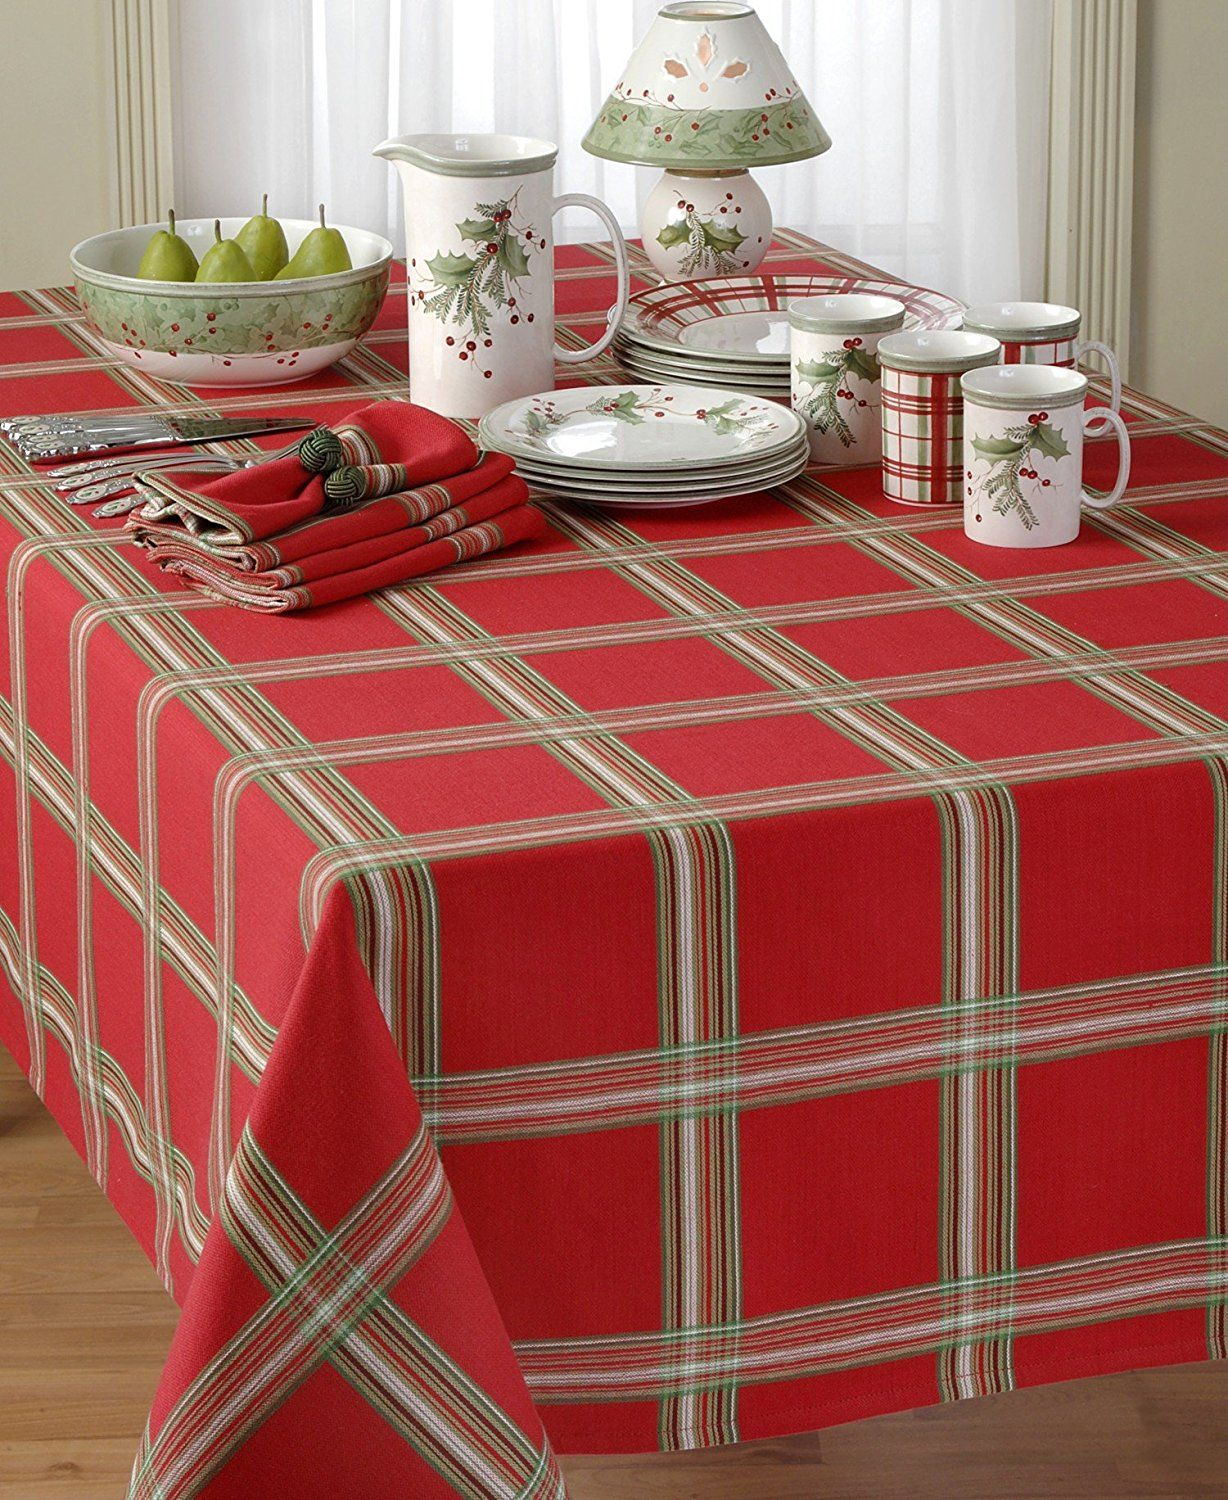 Lenox Linens Holiday Gatherings Plaid Runner Red 14 X 70 For